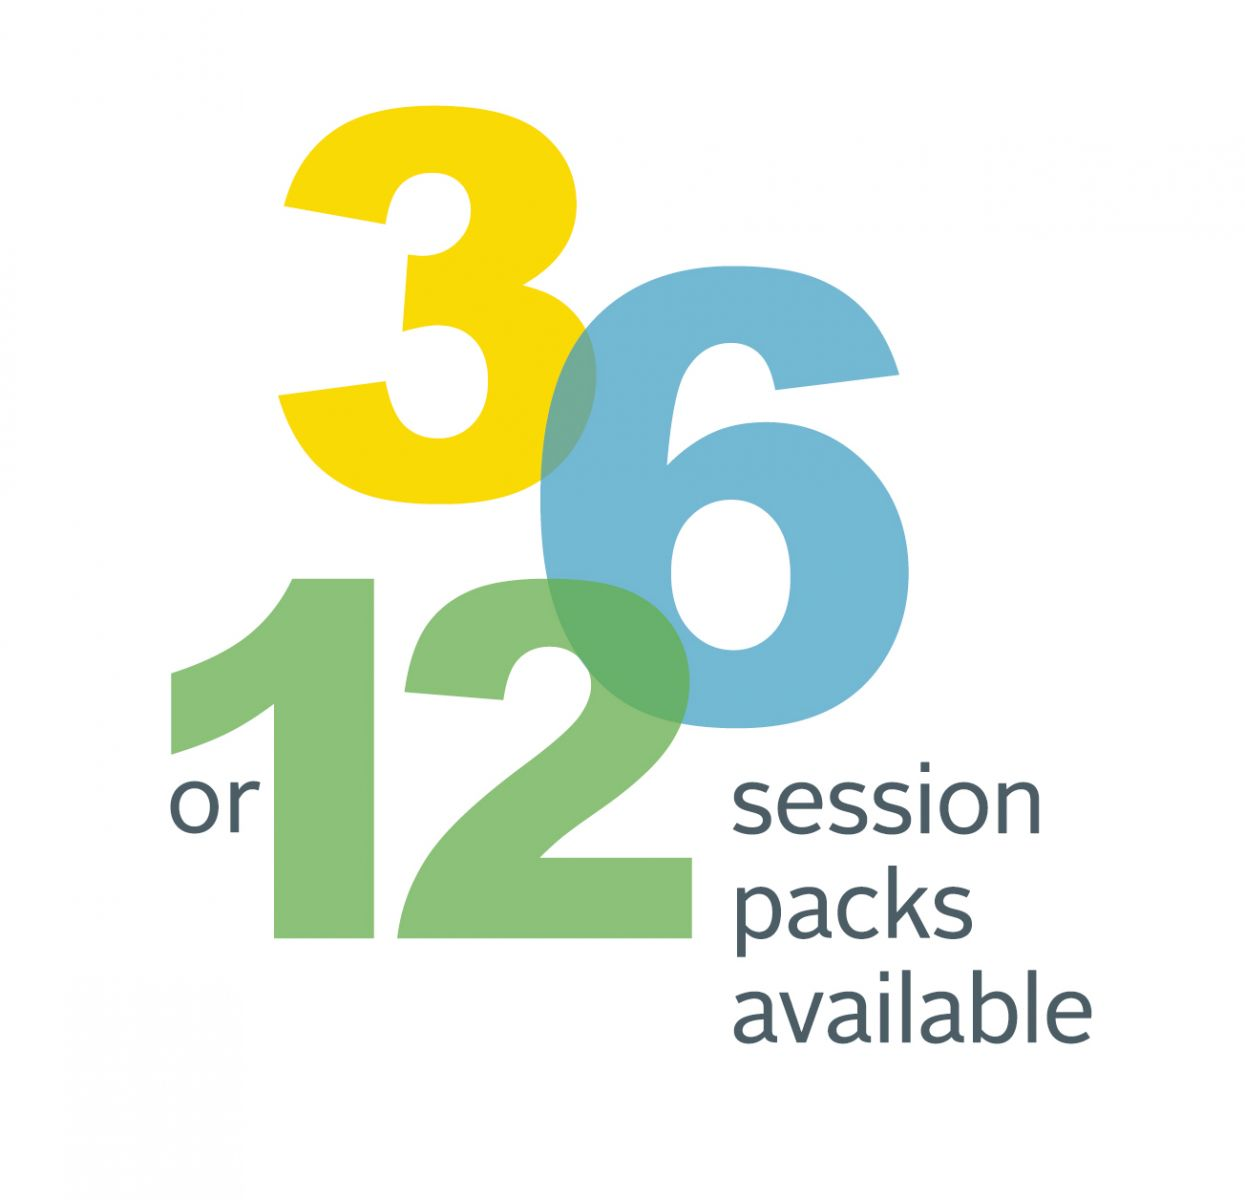 3, 6, or 12 session packs available